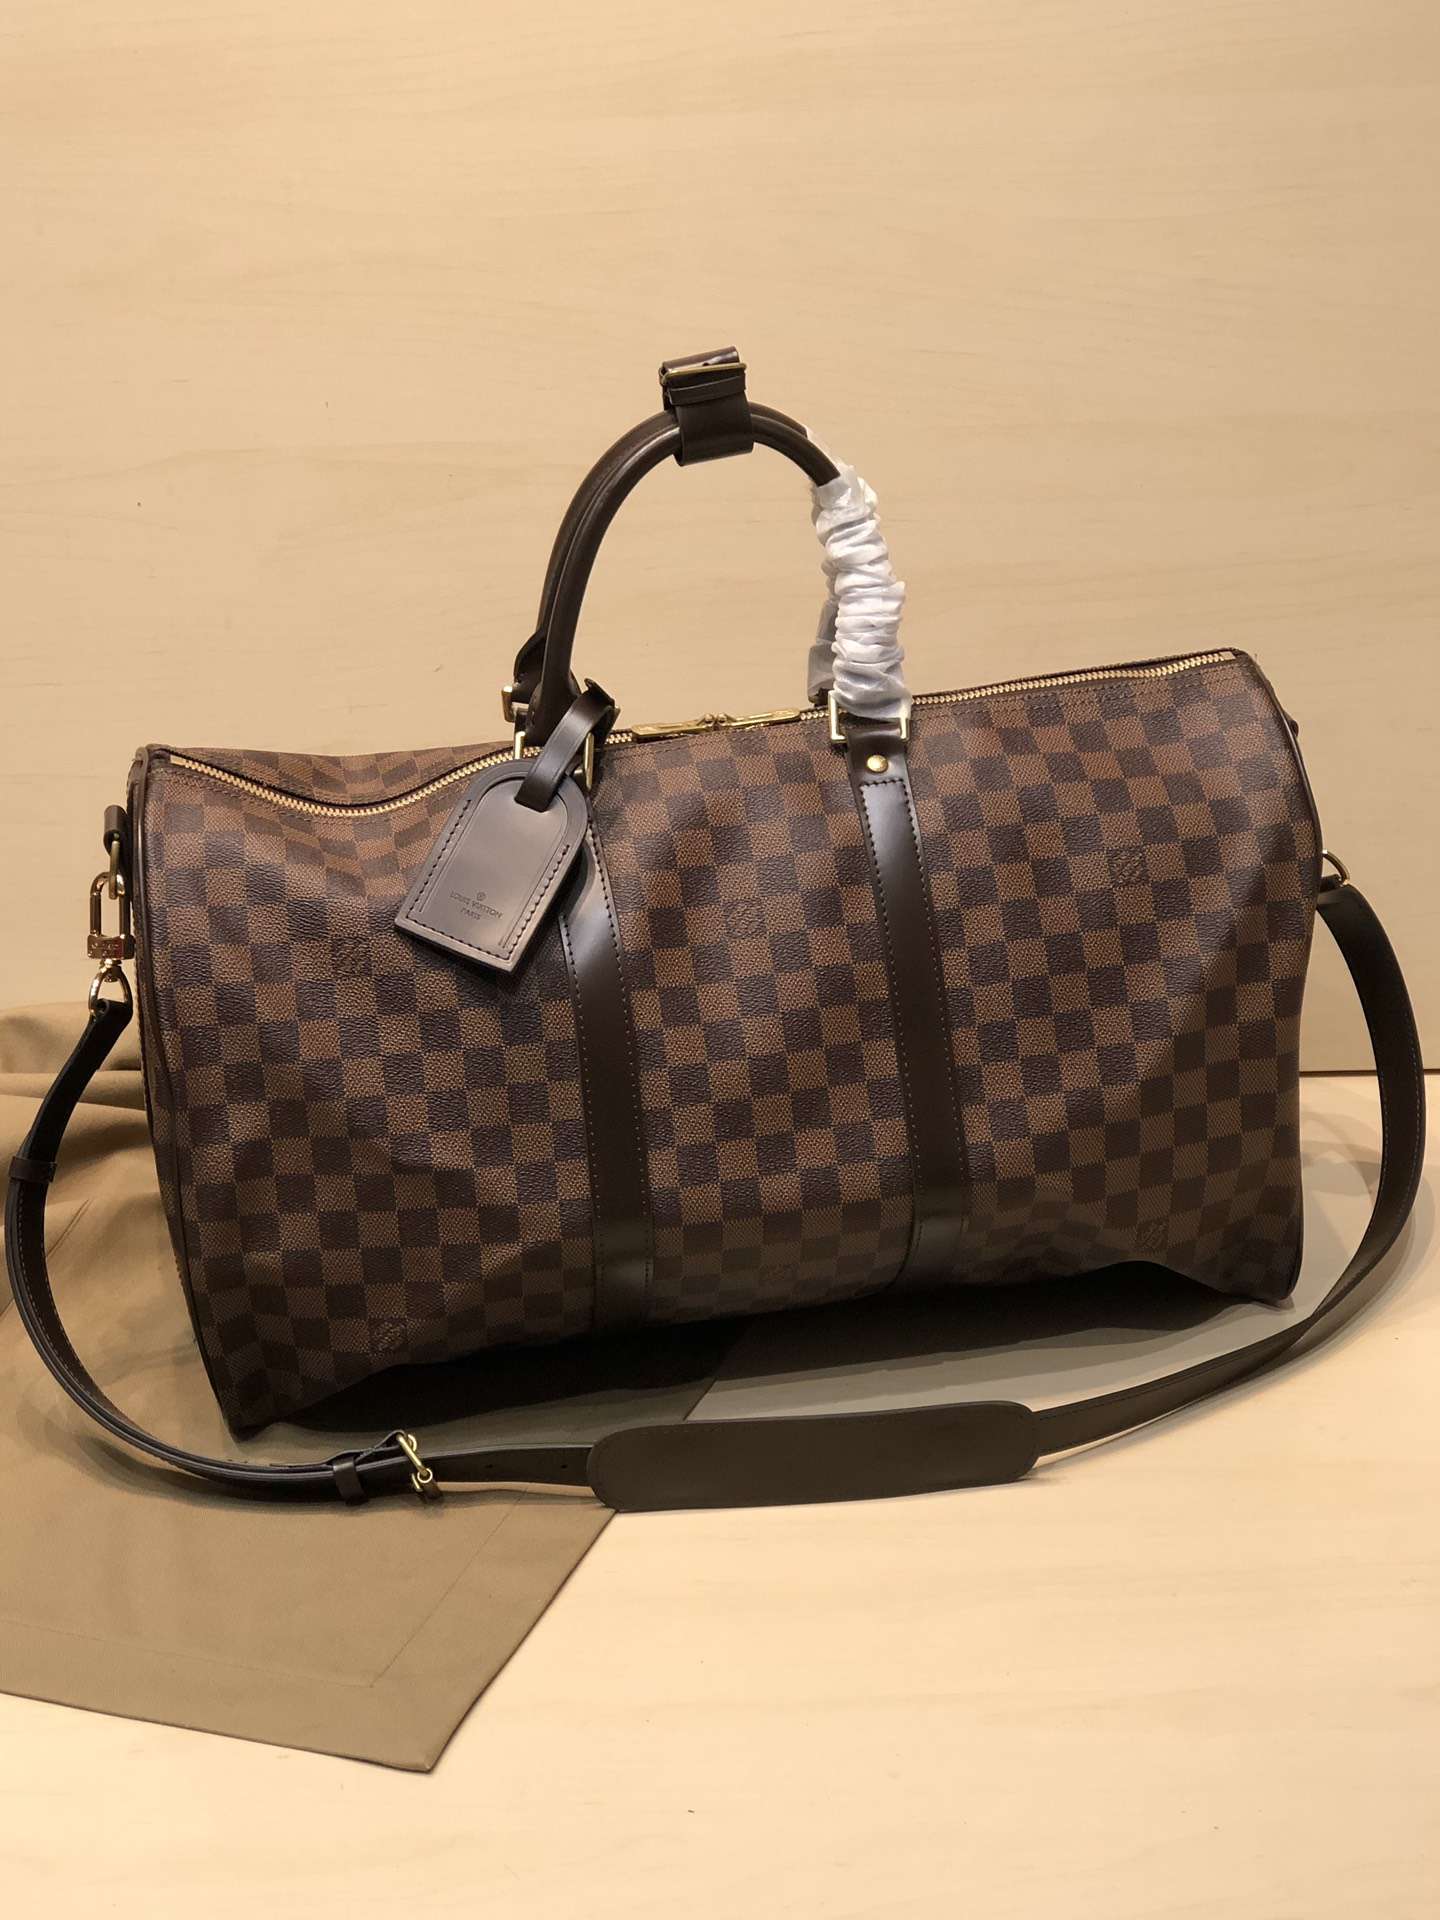 Replica Louis Vuitton Keepall Bandouliere-1 45 50 55